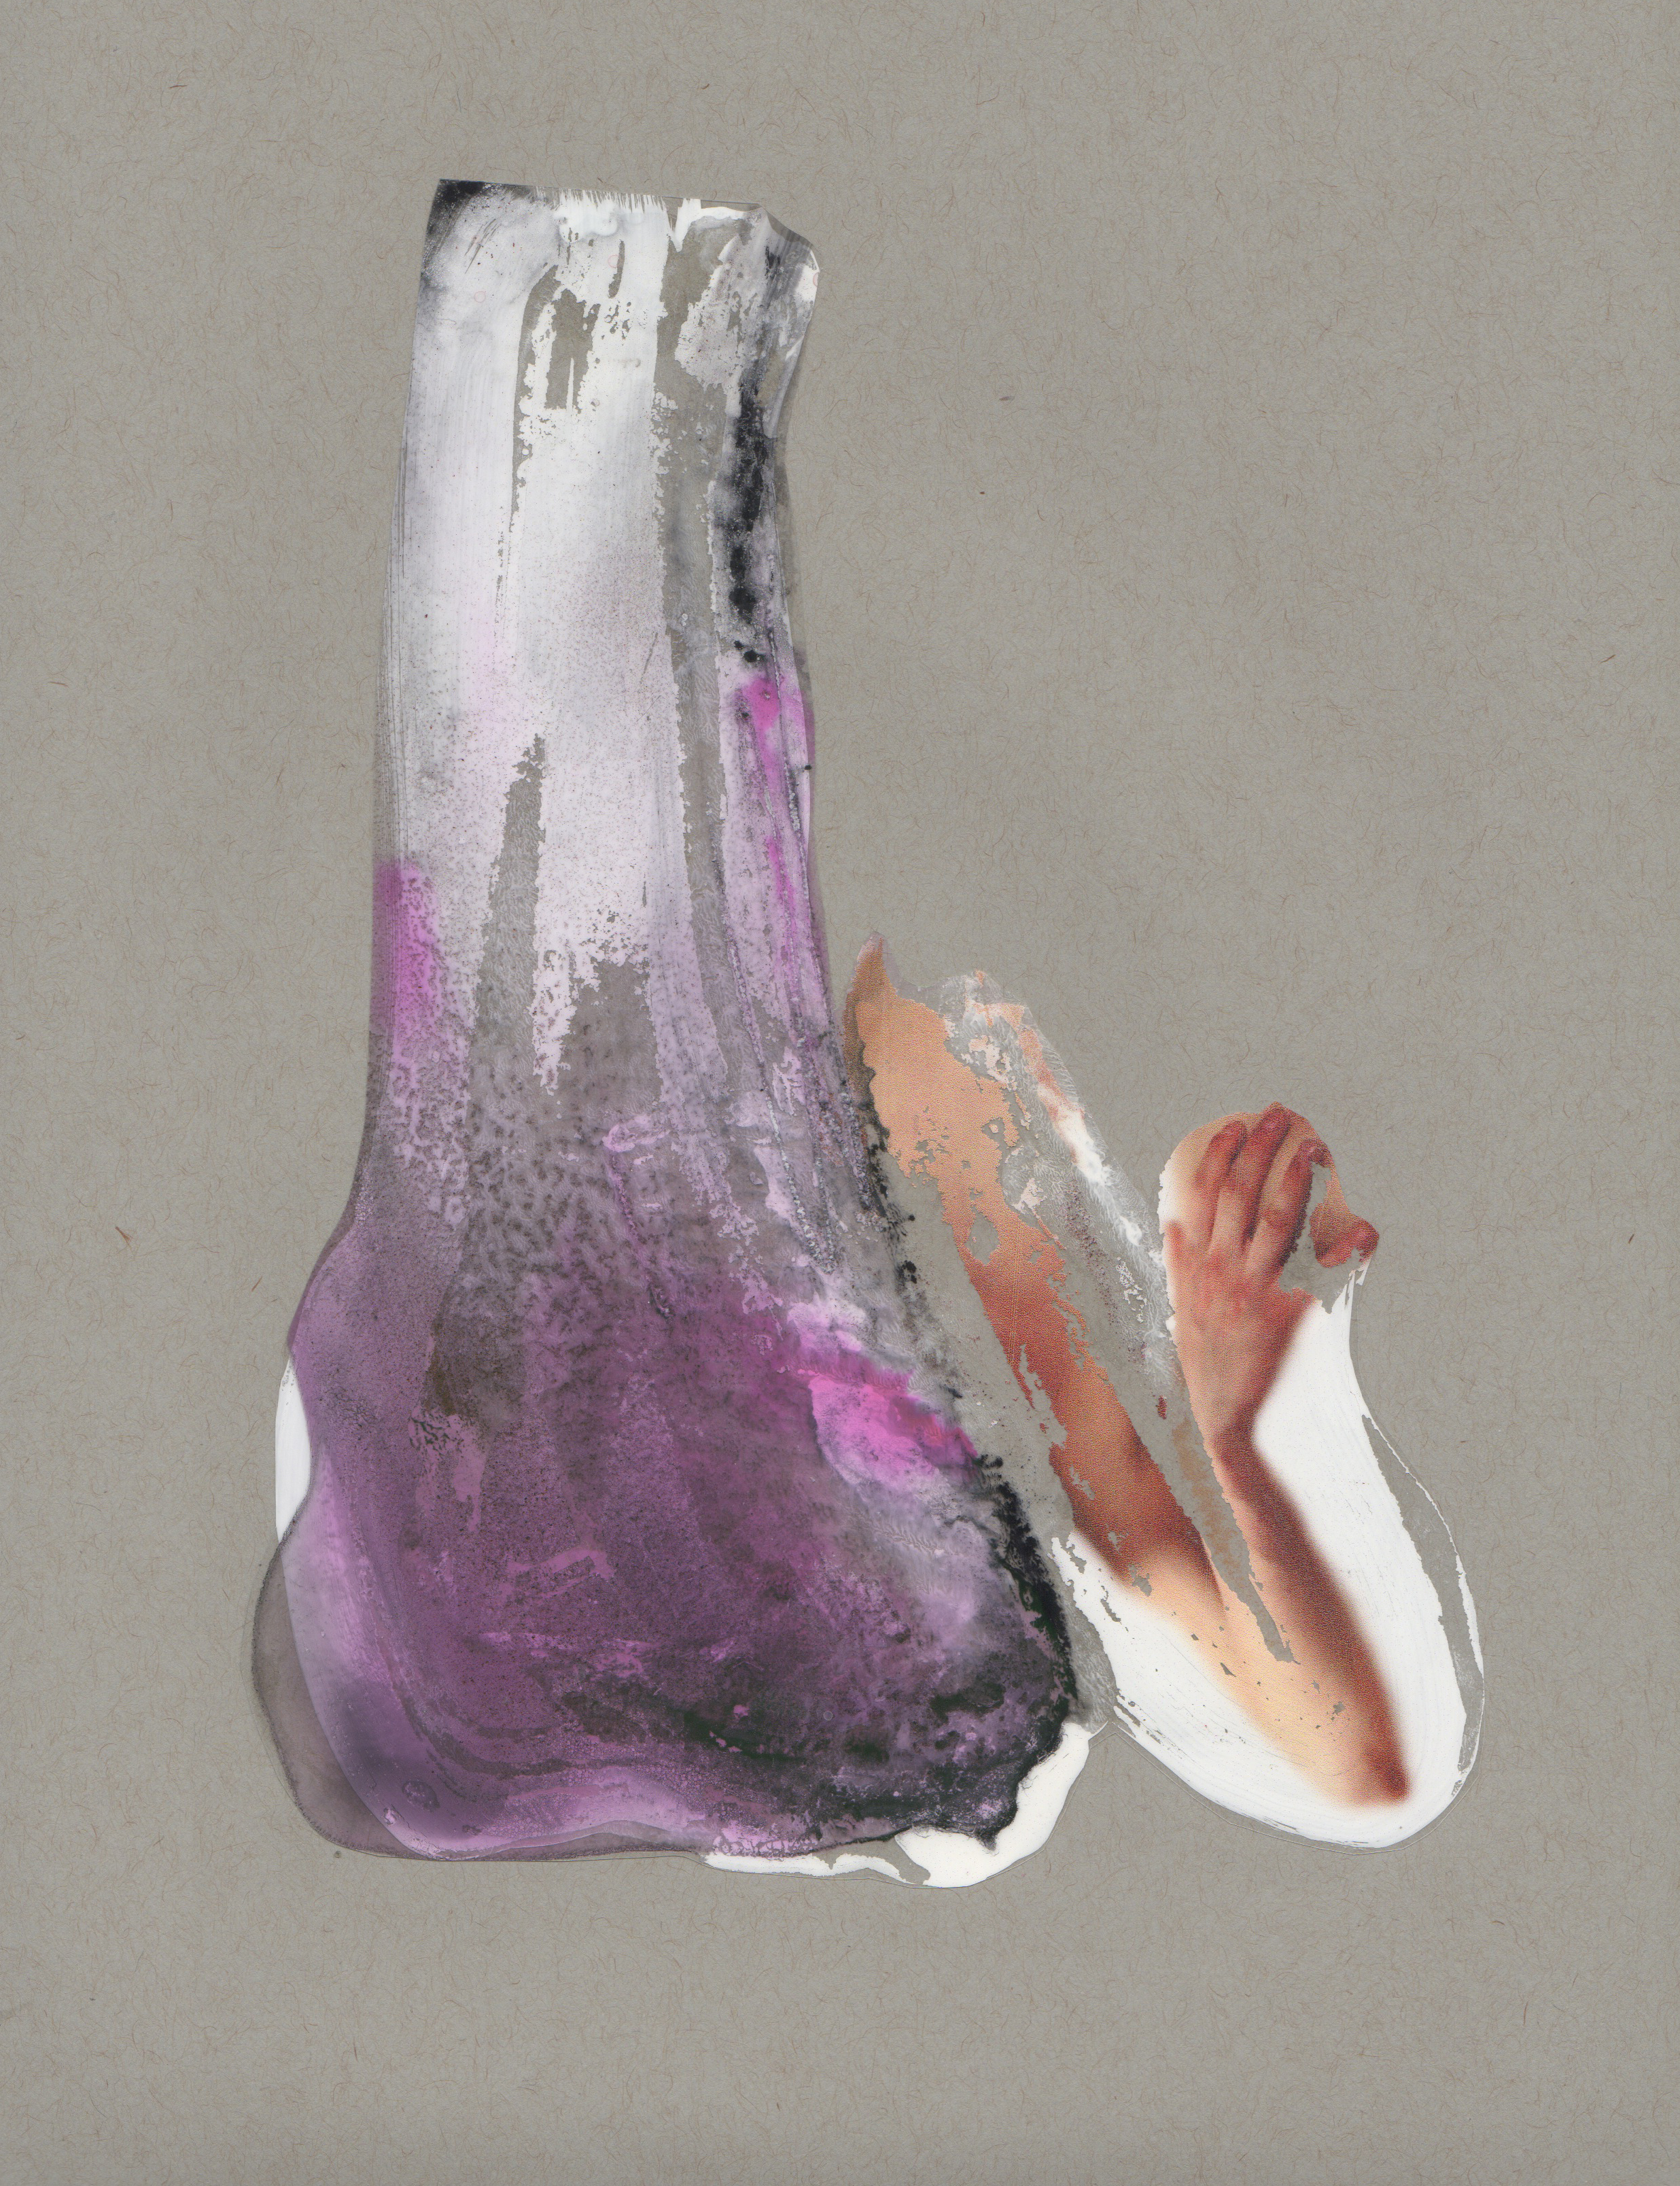 Other-side of the Glass, 2014, paint transparency archival ink and paper, 9x12 inches